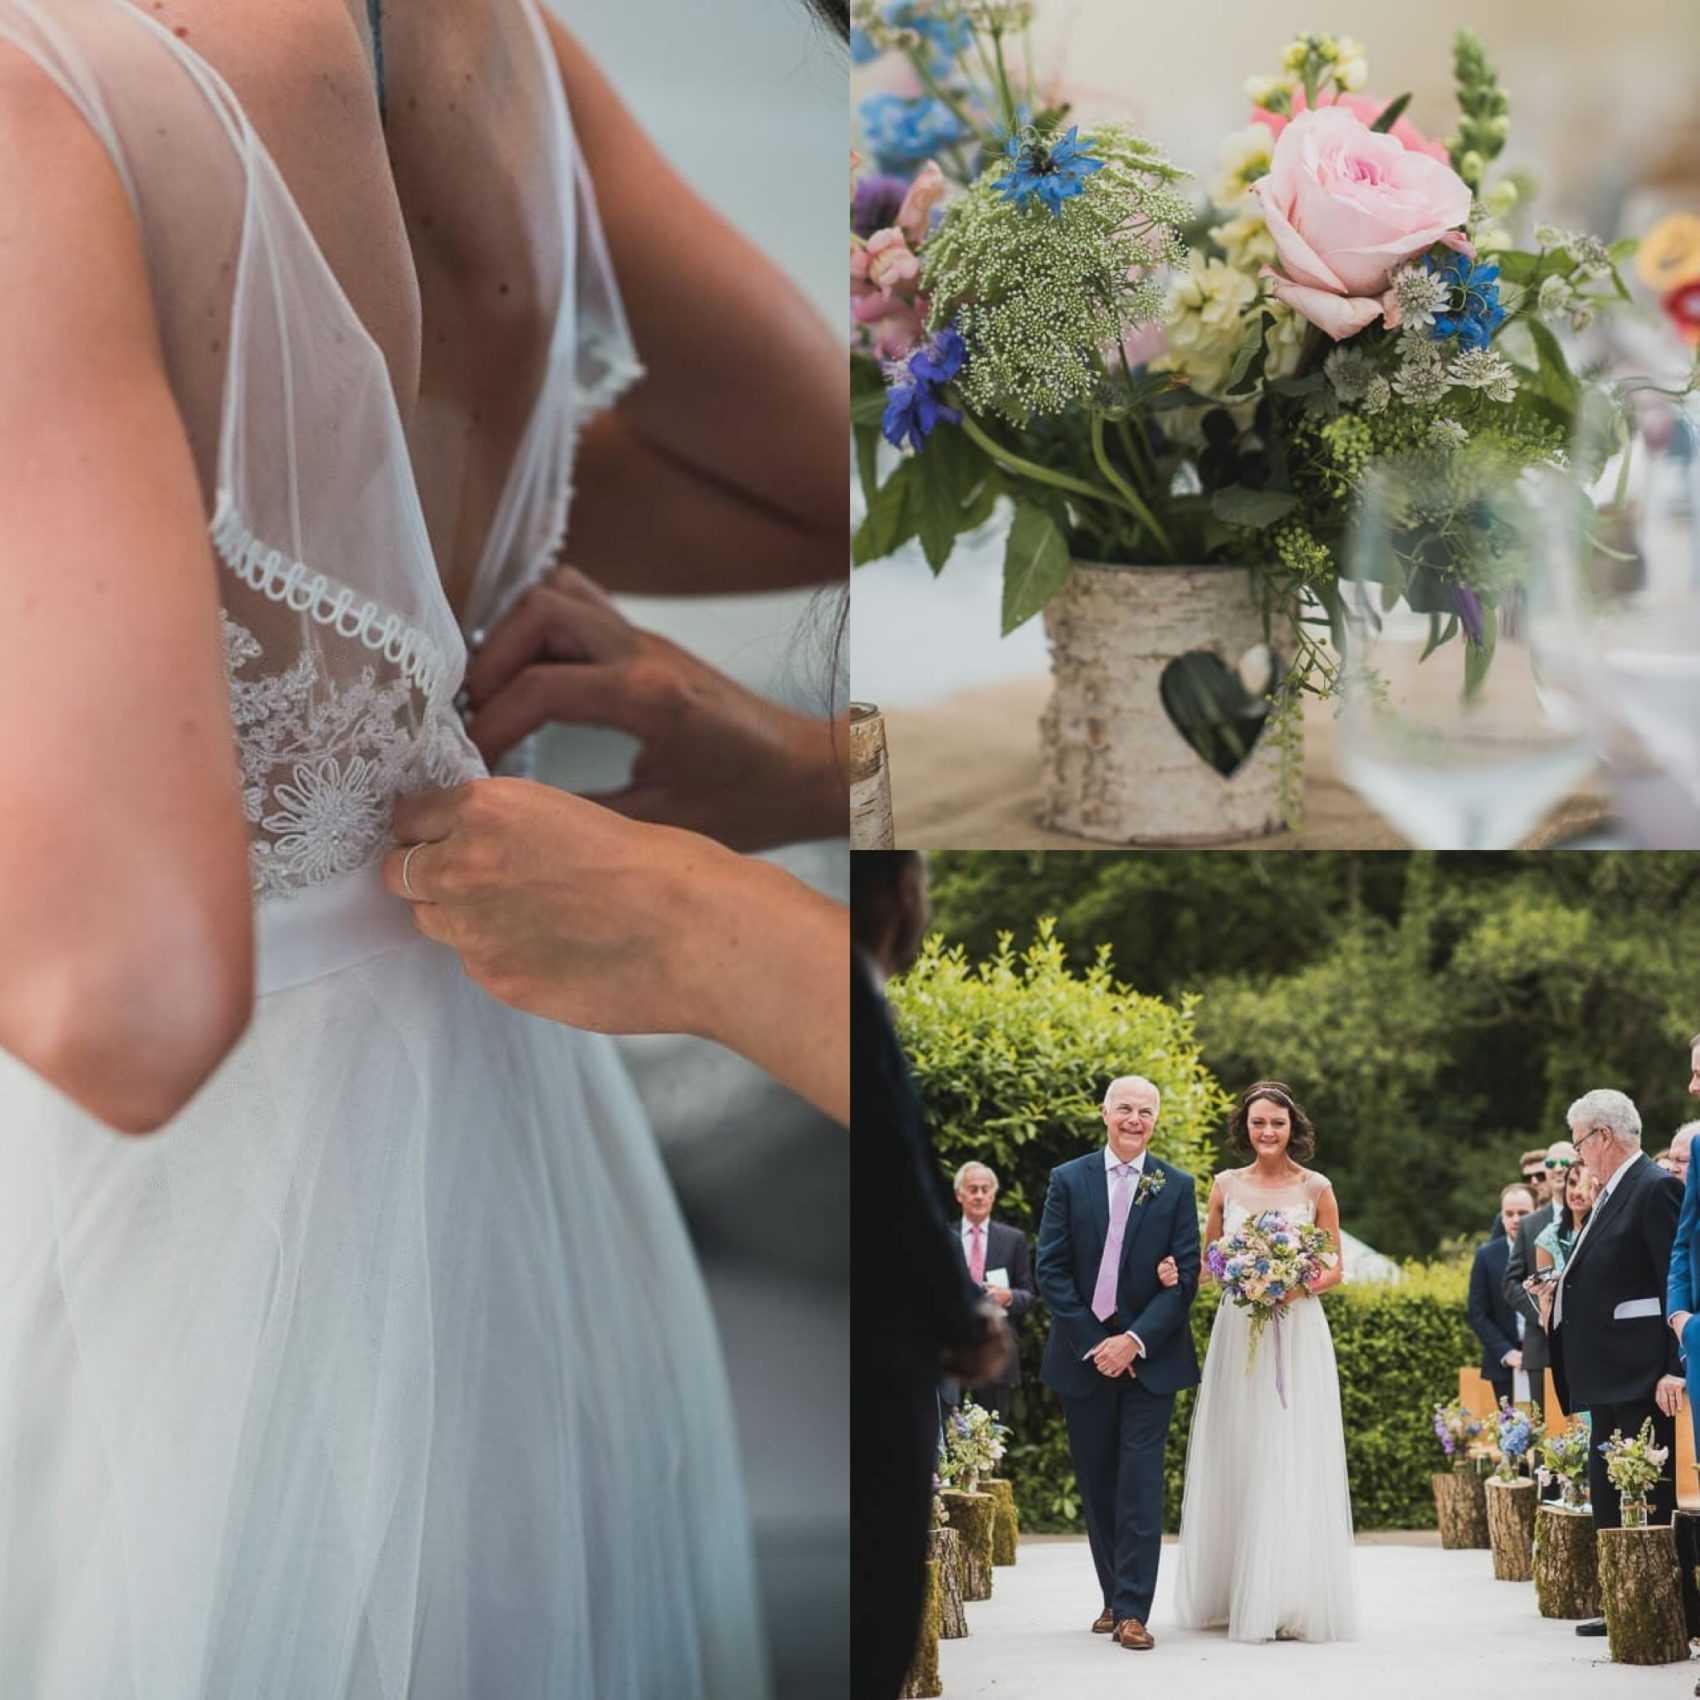 dress, close up, flowers, details, aisle, walking, father of the bride, bride, logs, back, getting ready, friends, guests, ever after, lower grenofen, nick walker